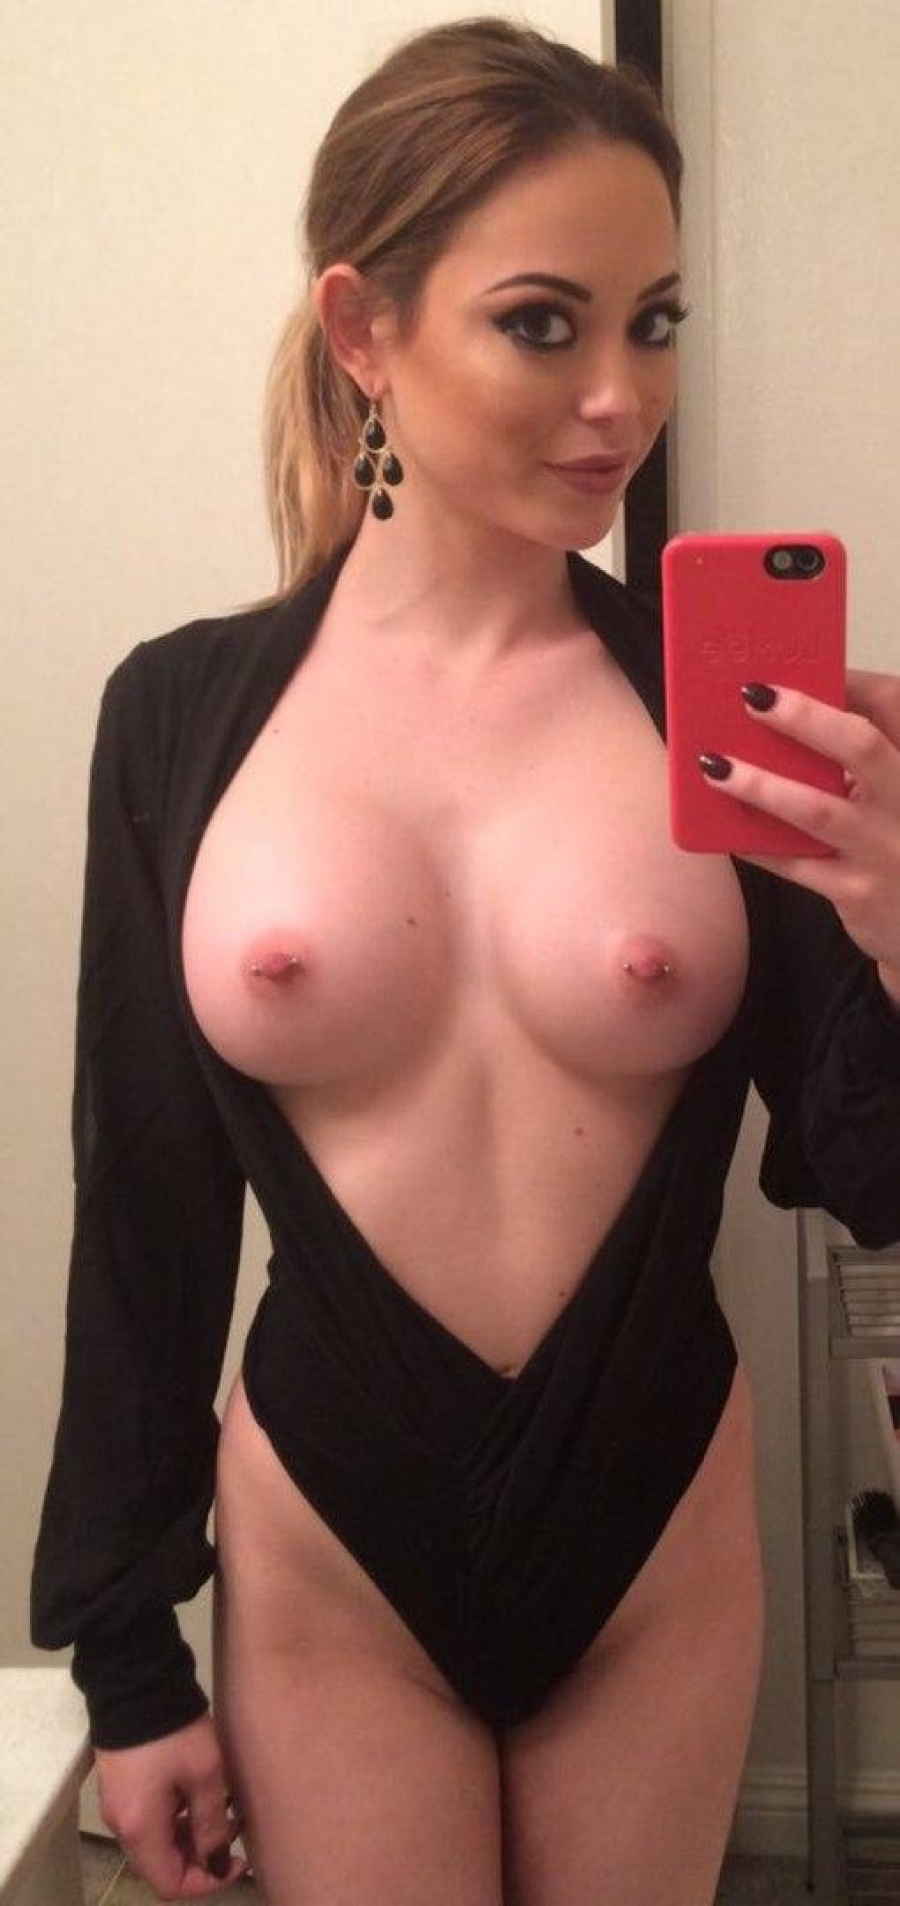 Hot boobs with piercing